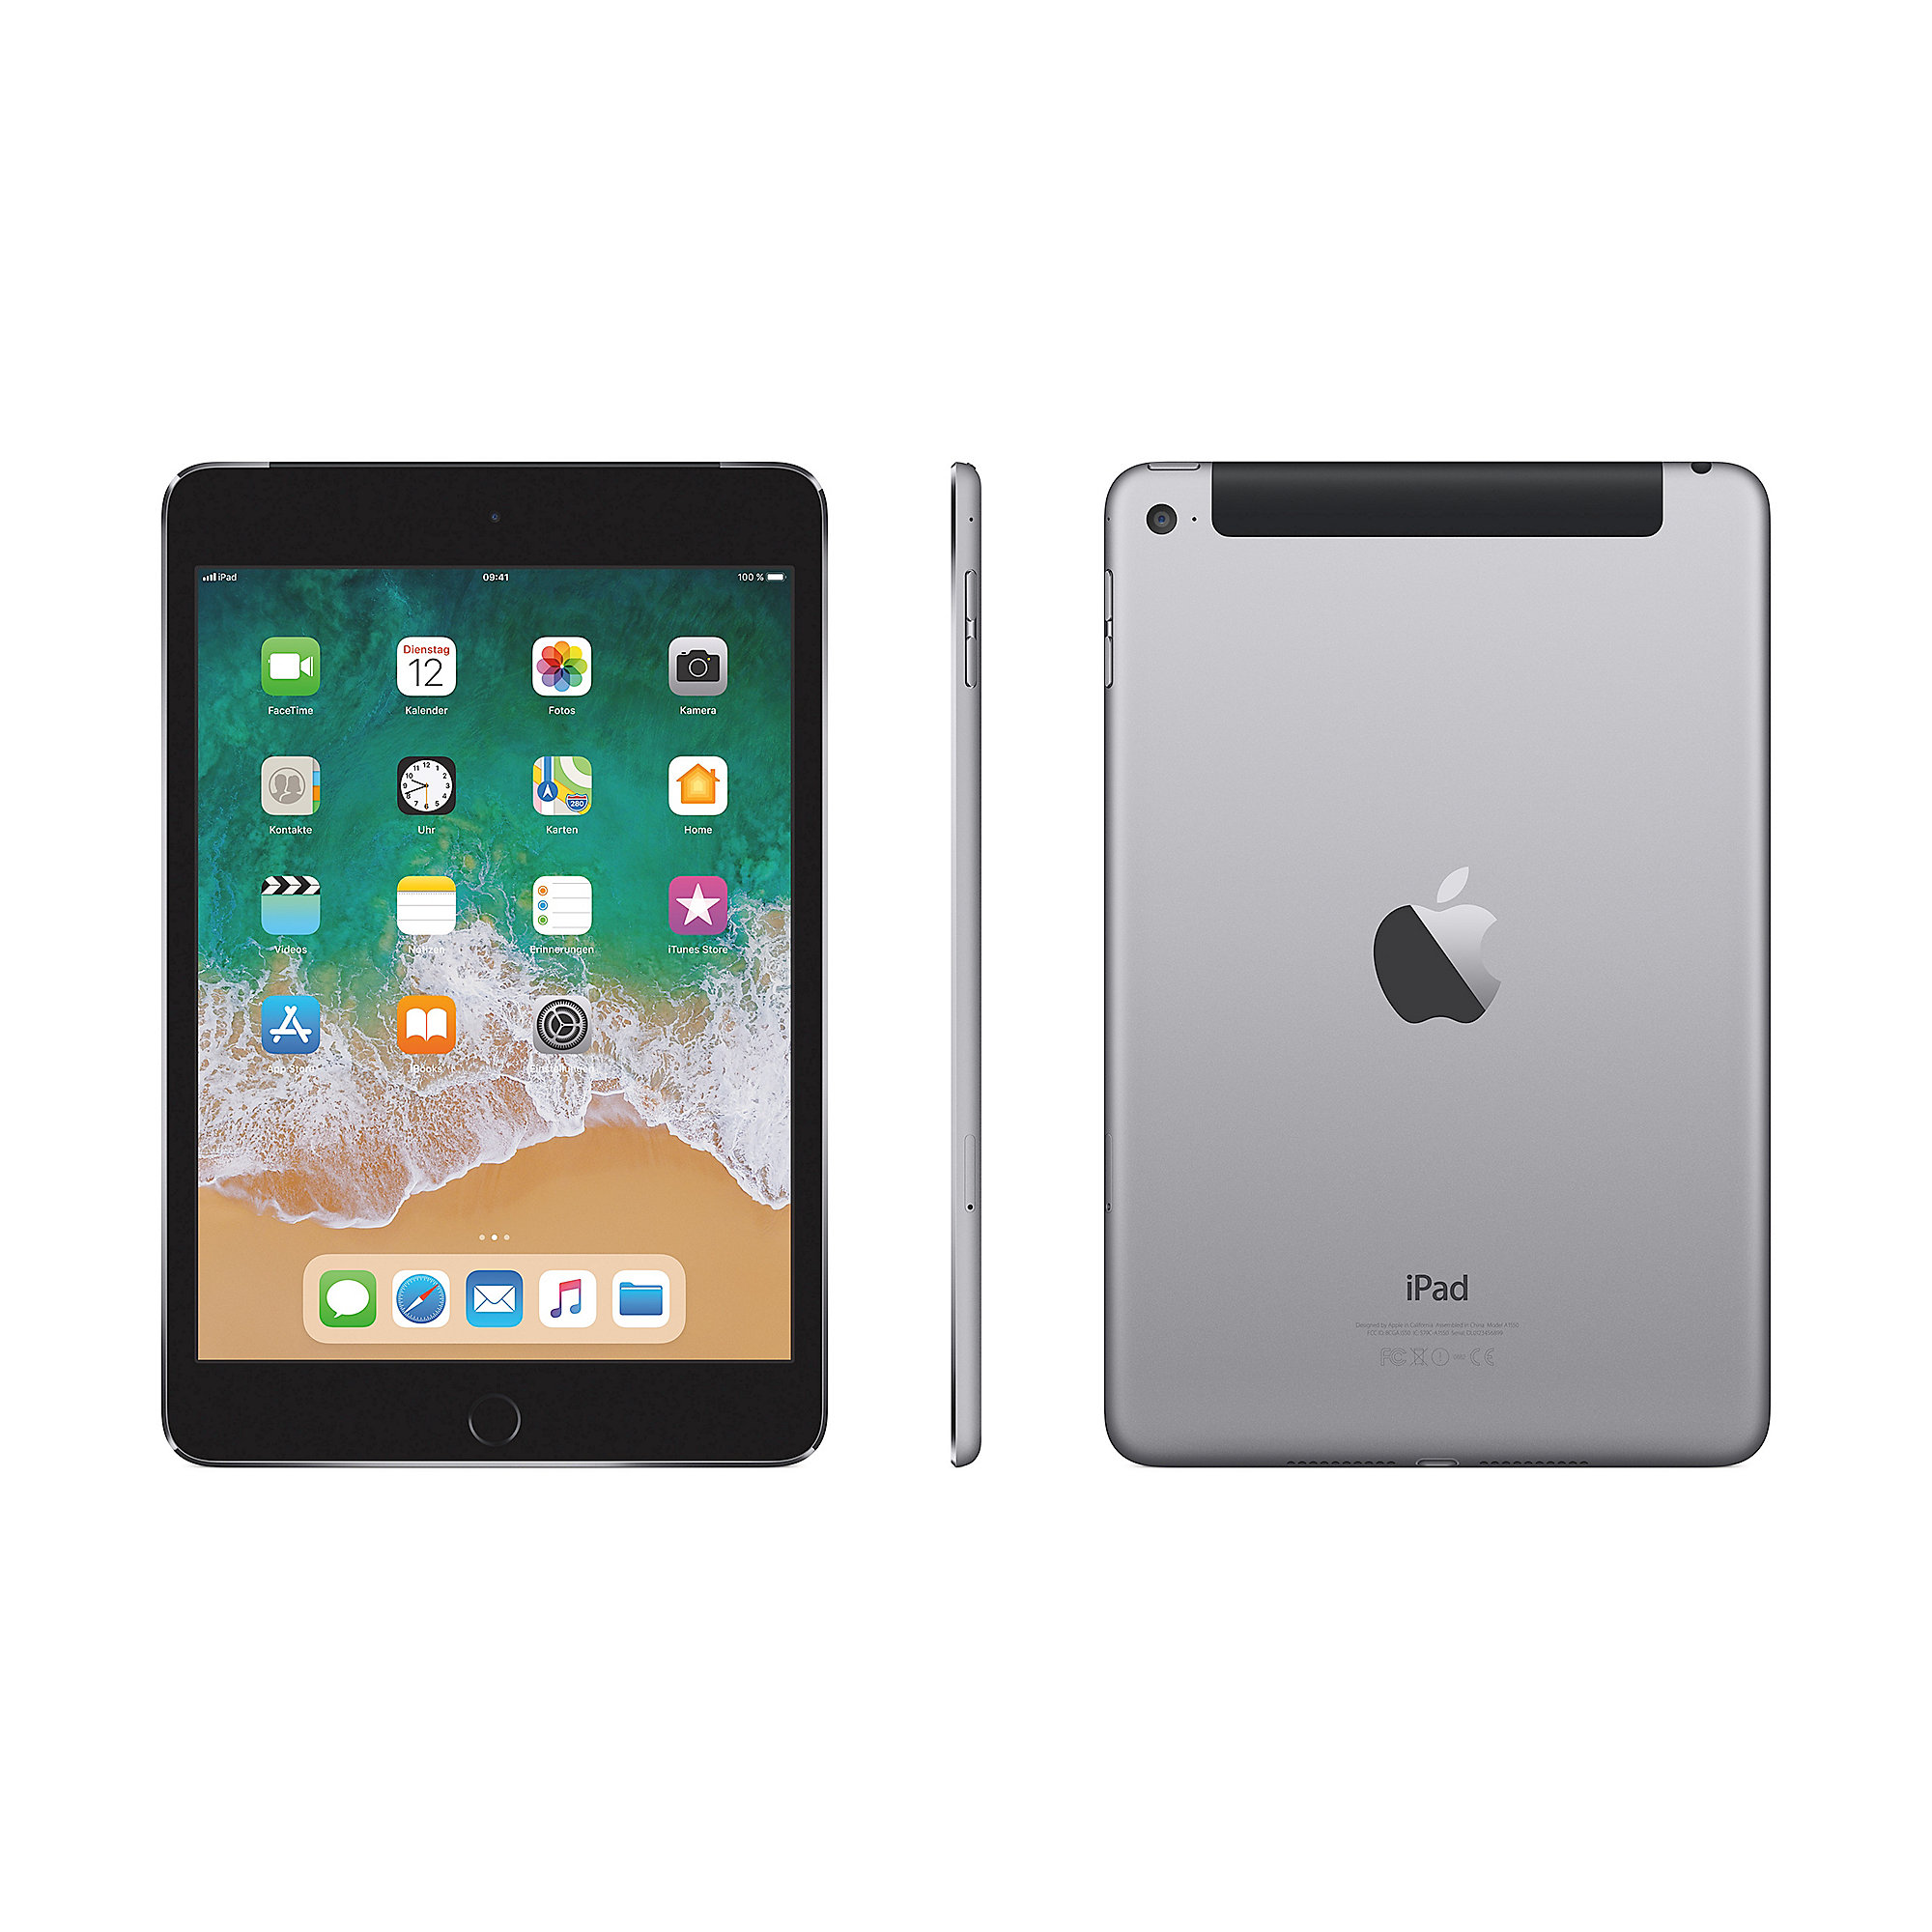 Apple iPad mini 4 Wi-Fi + Cellular 128 GB Space Grau (MK8D2FD/A)